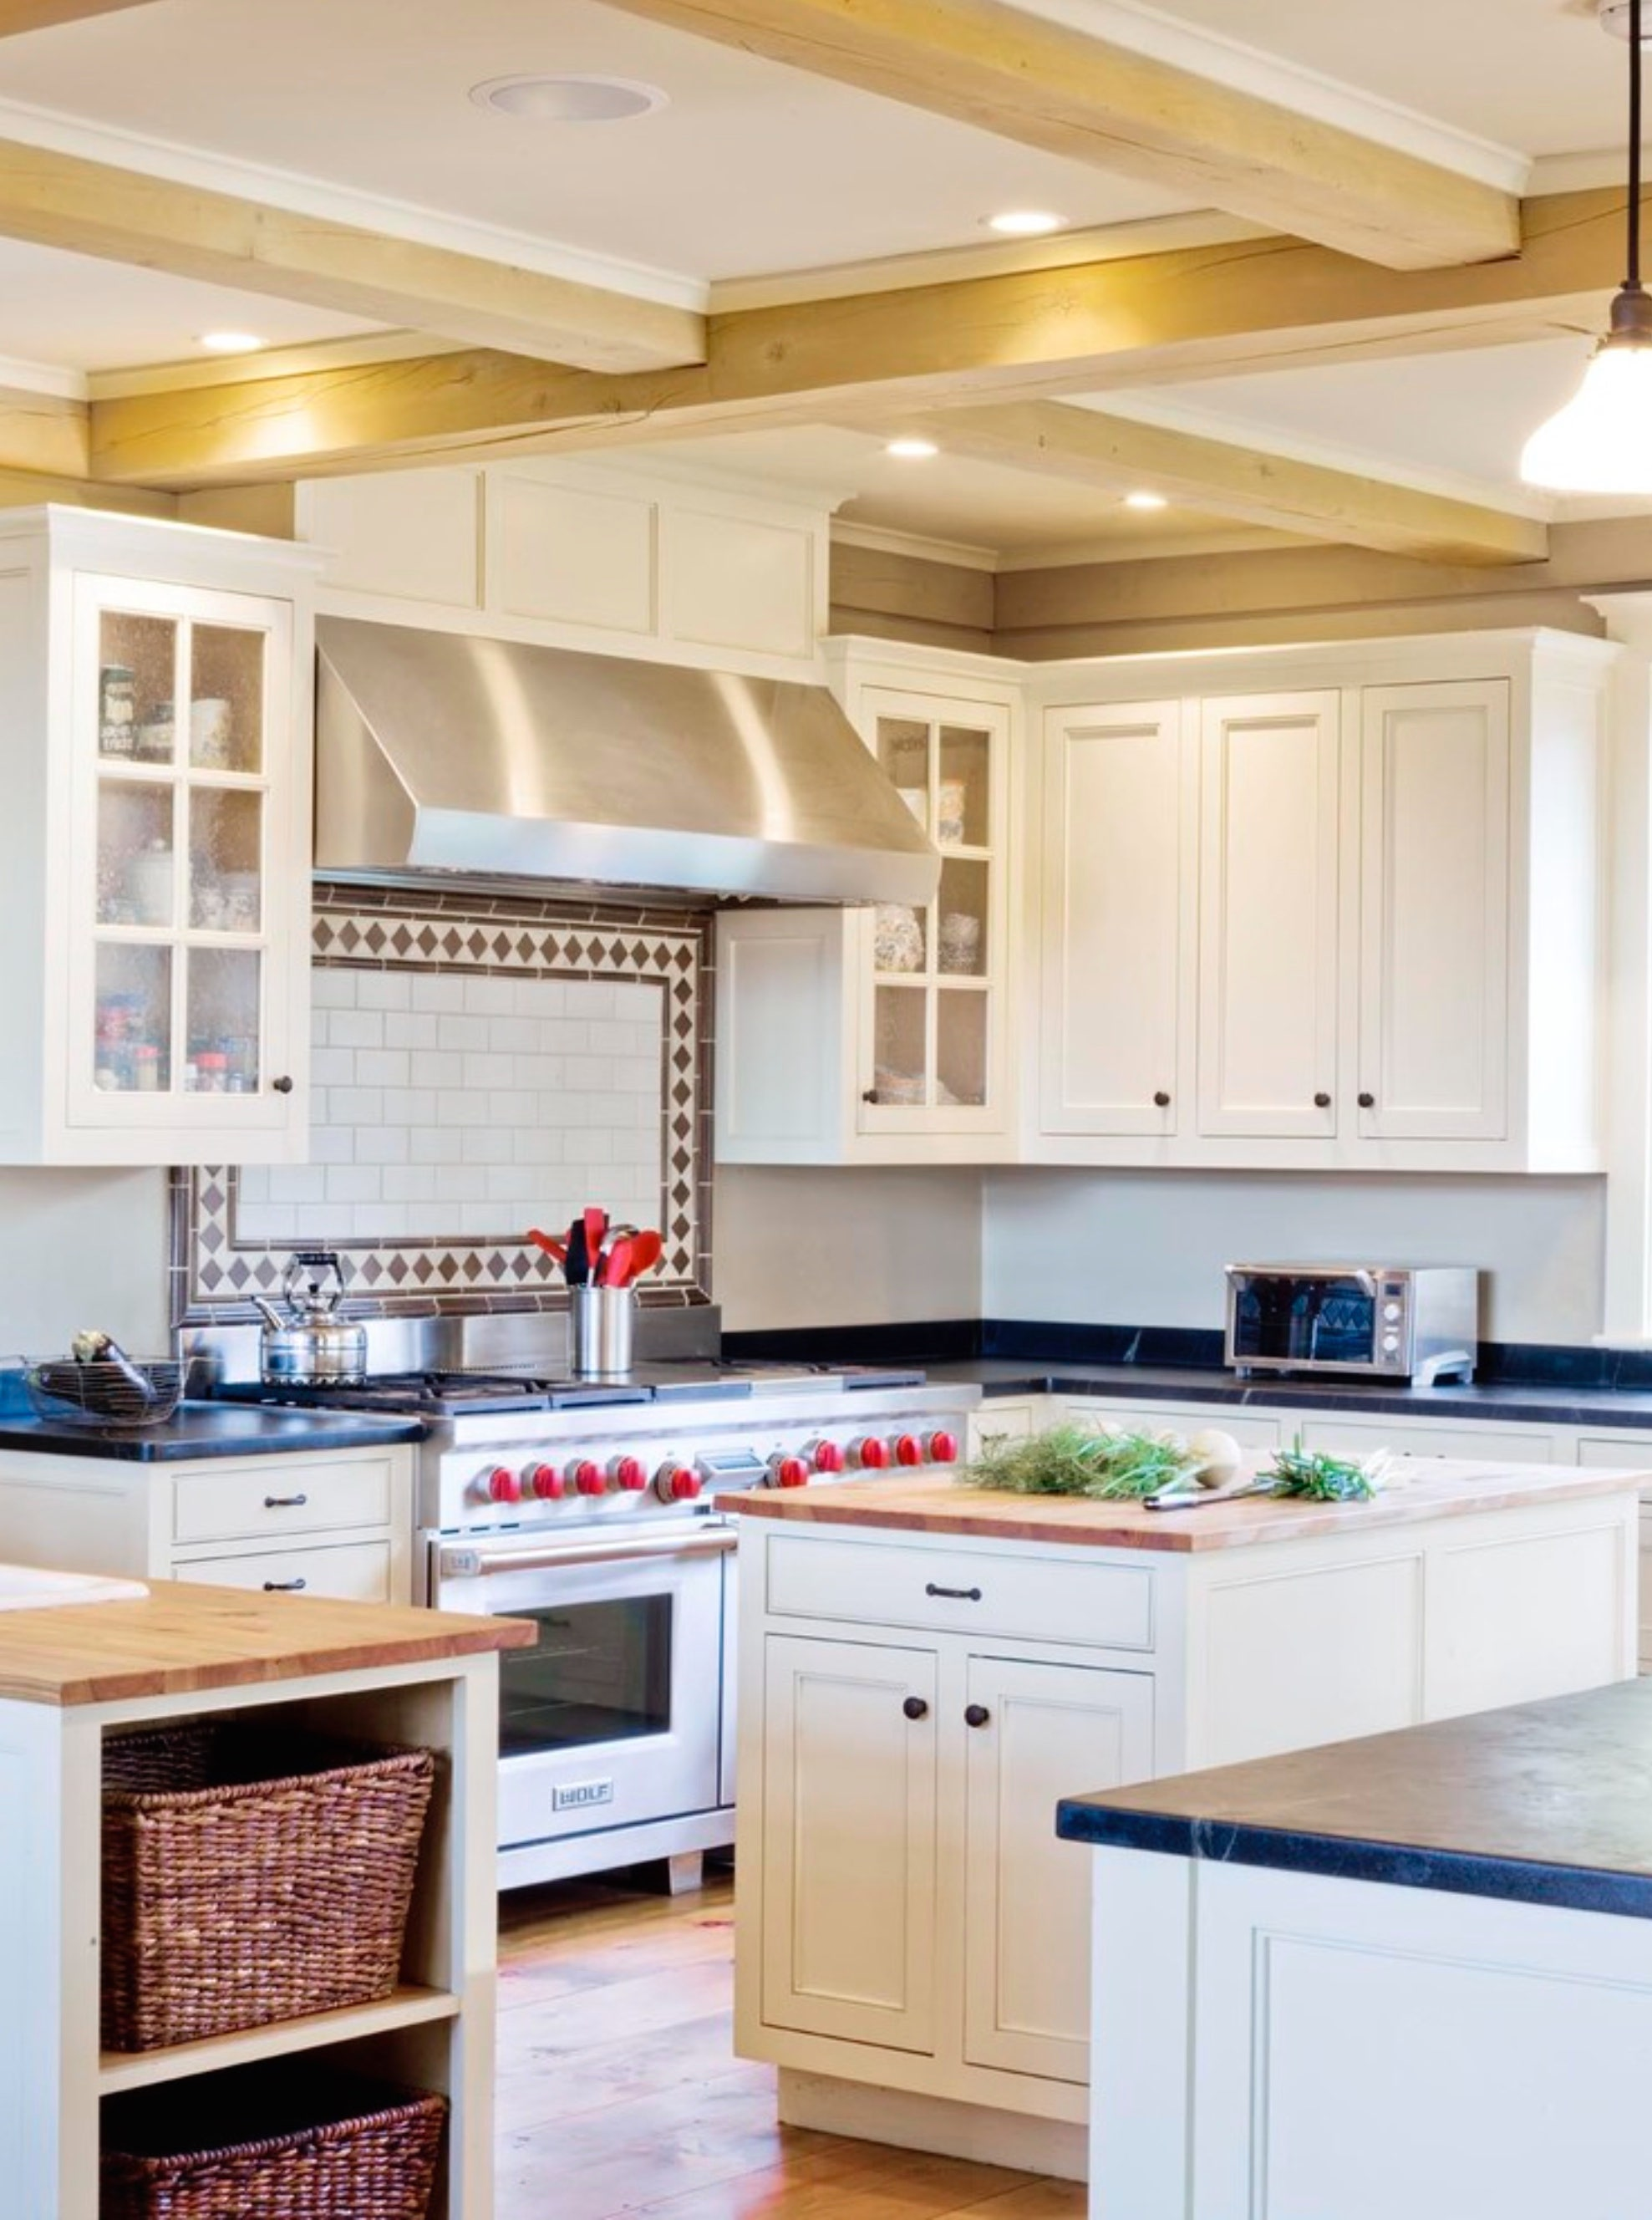 What Are The Different Types Of Range Hoods With Photos